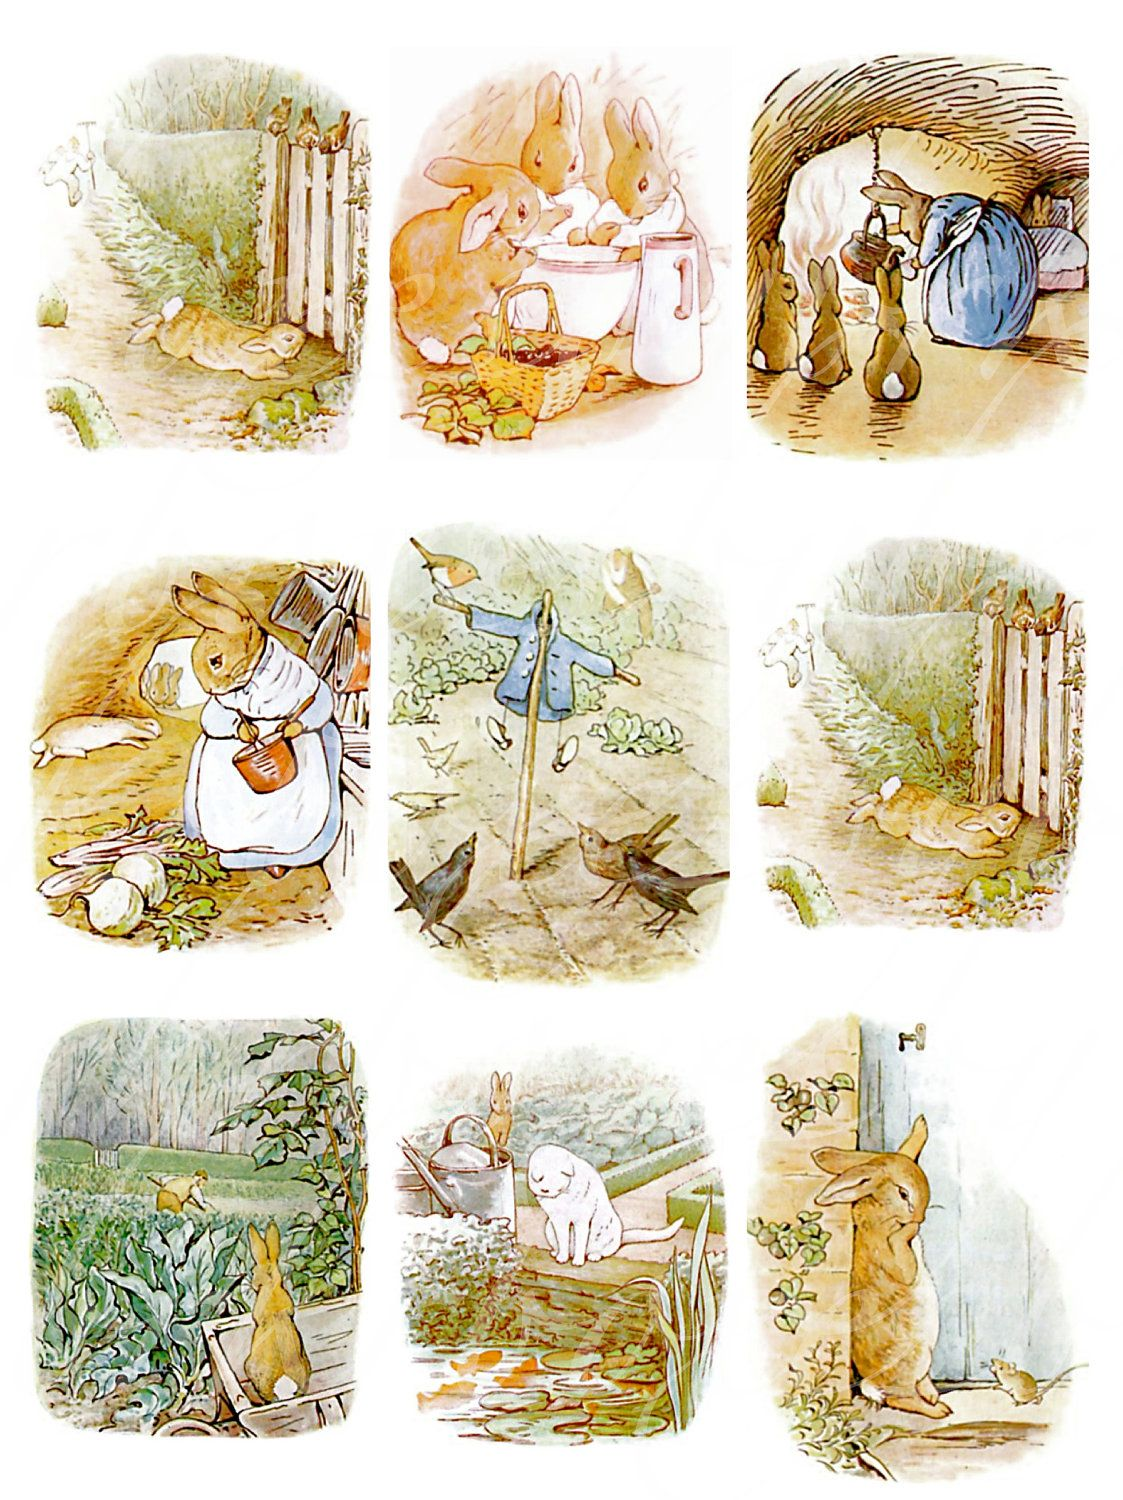 Instant download of 24 peter rabbit images from by - Peter rabbit nursery border ...